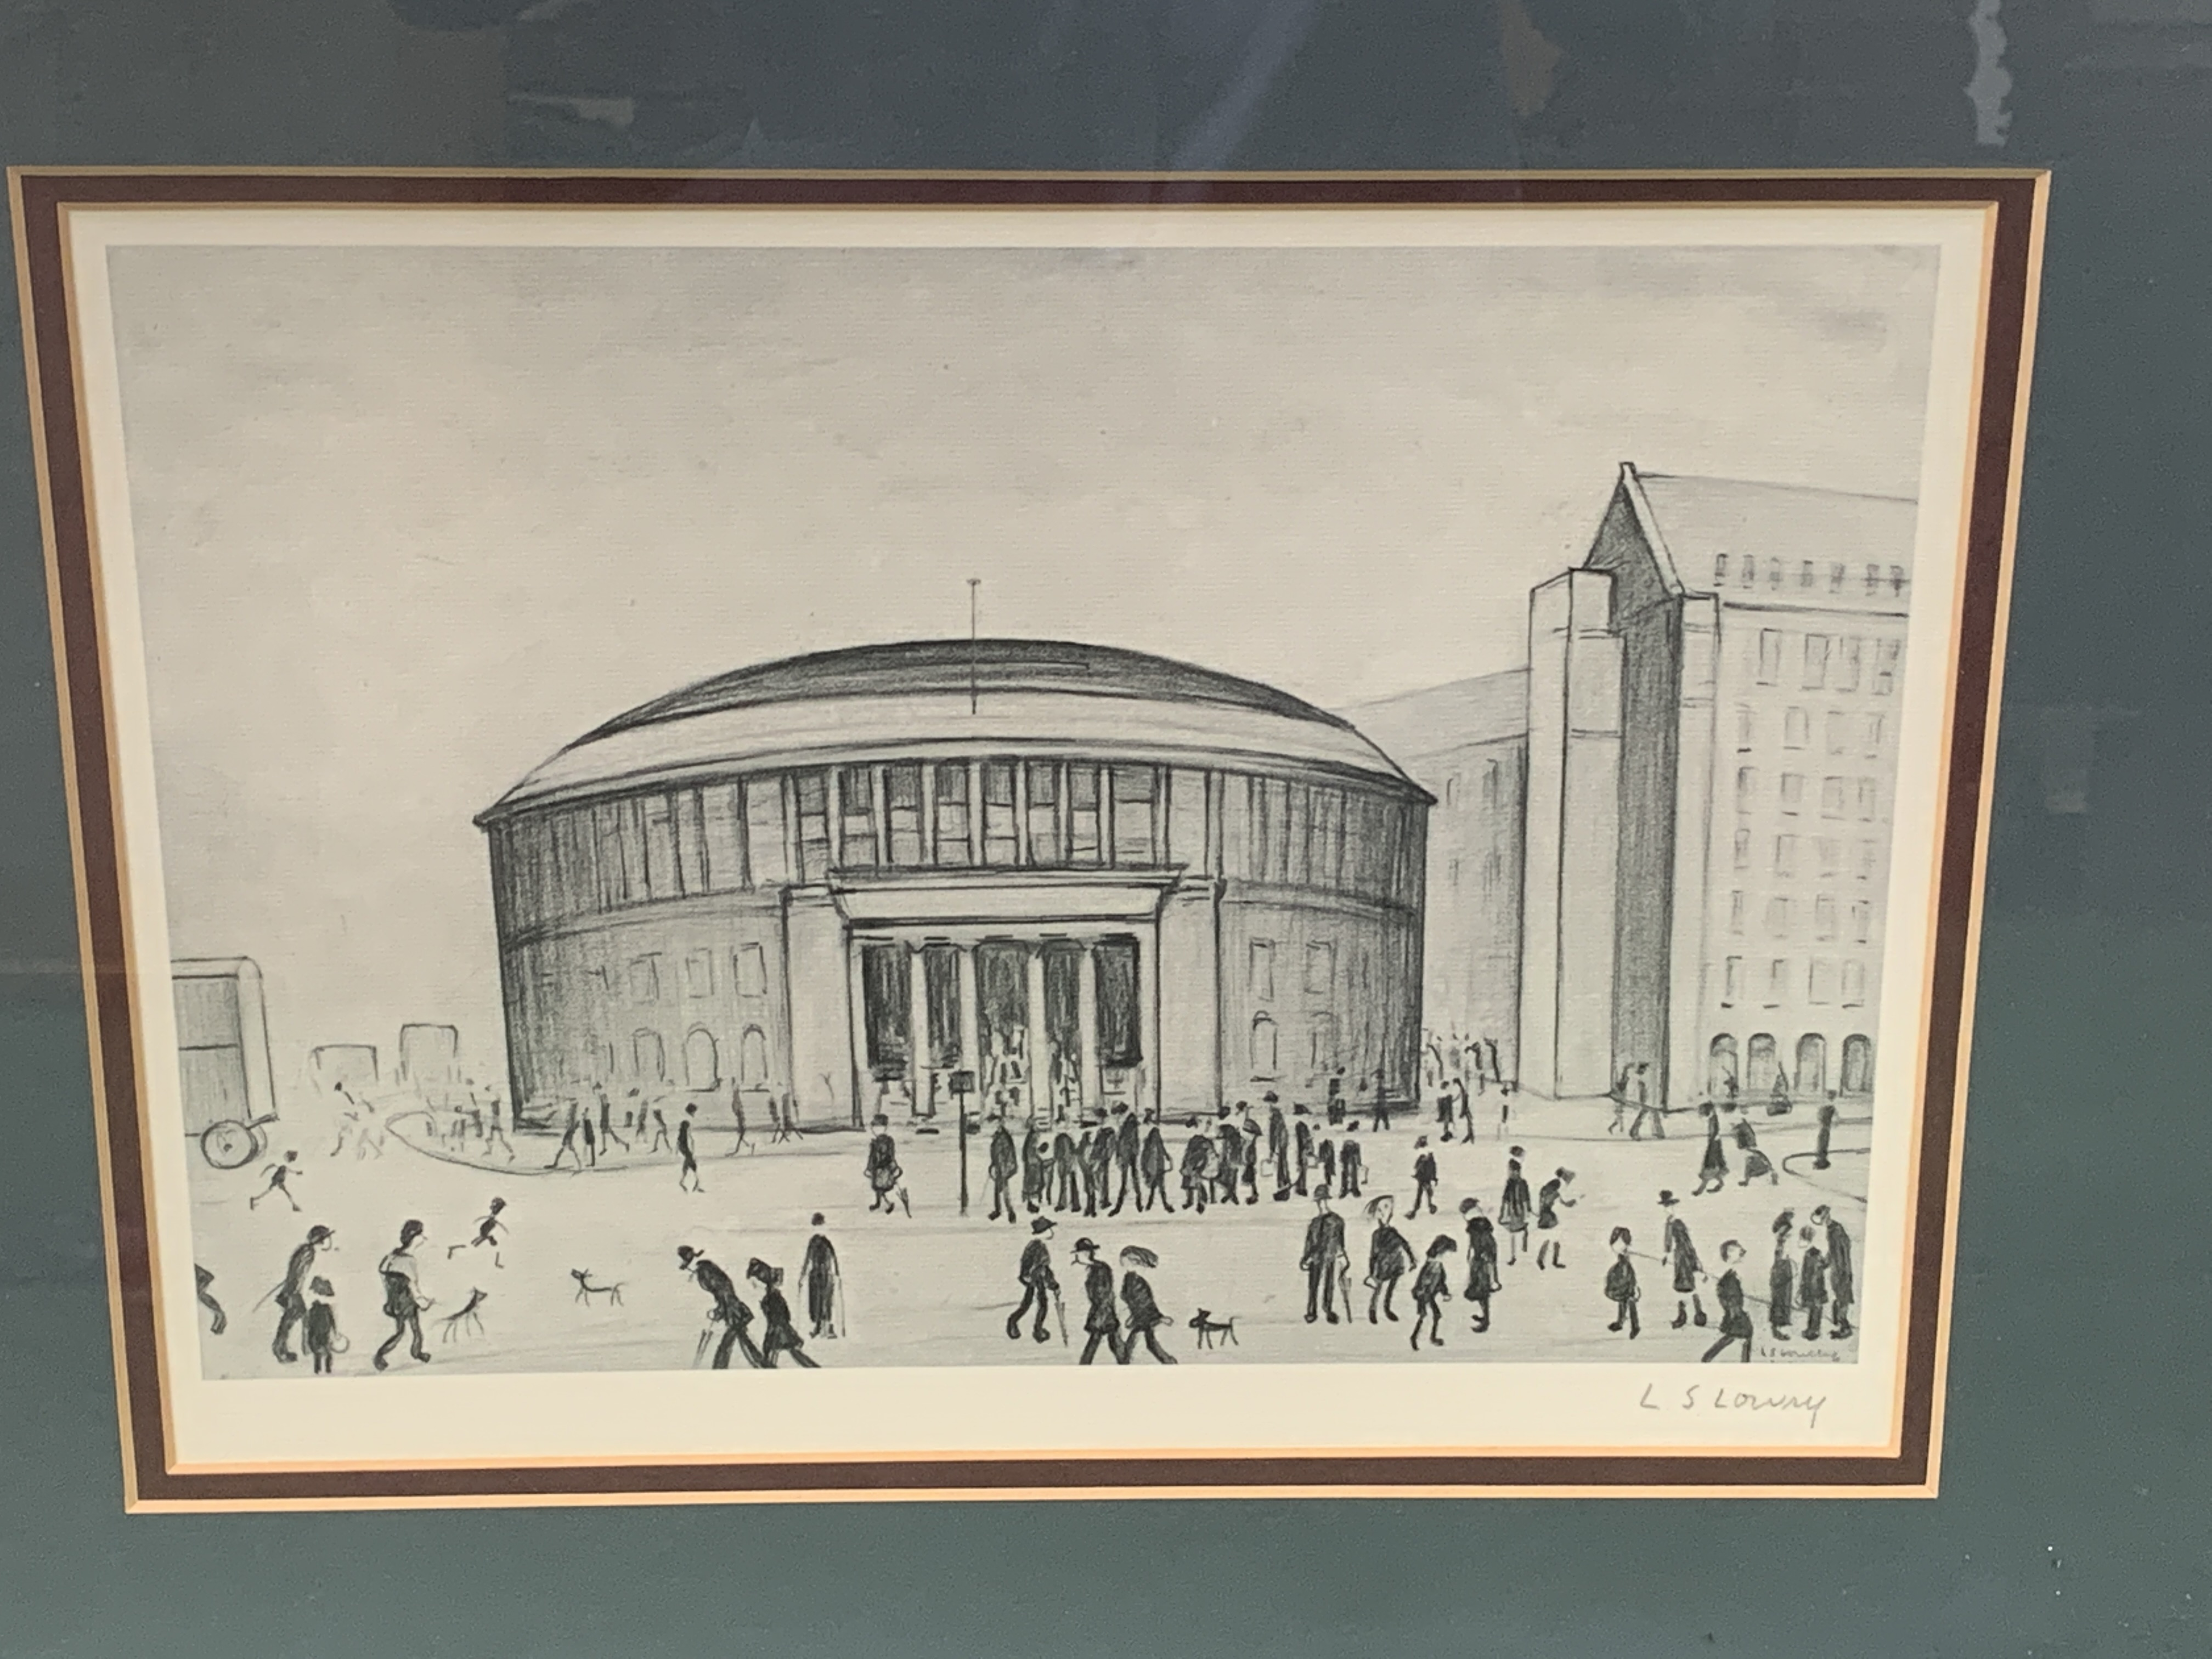 Framed and glazed Limited Edition L S Lowry print of Manchester Reference Library - Image 4 of 4